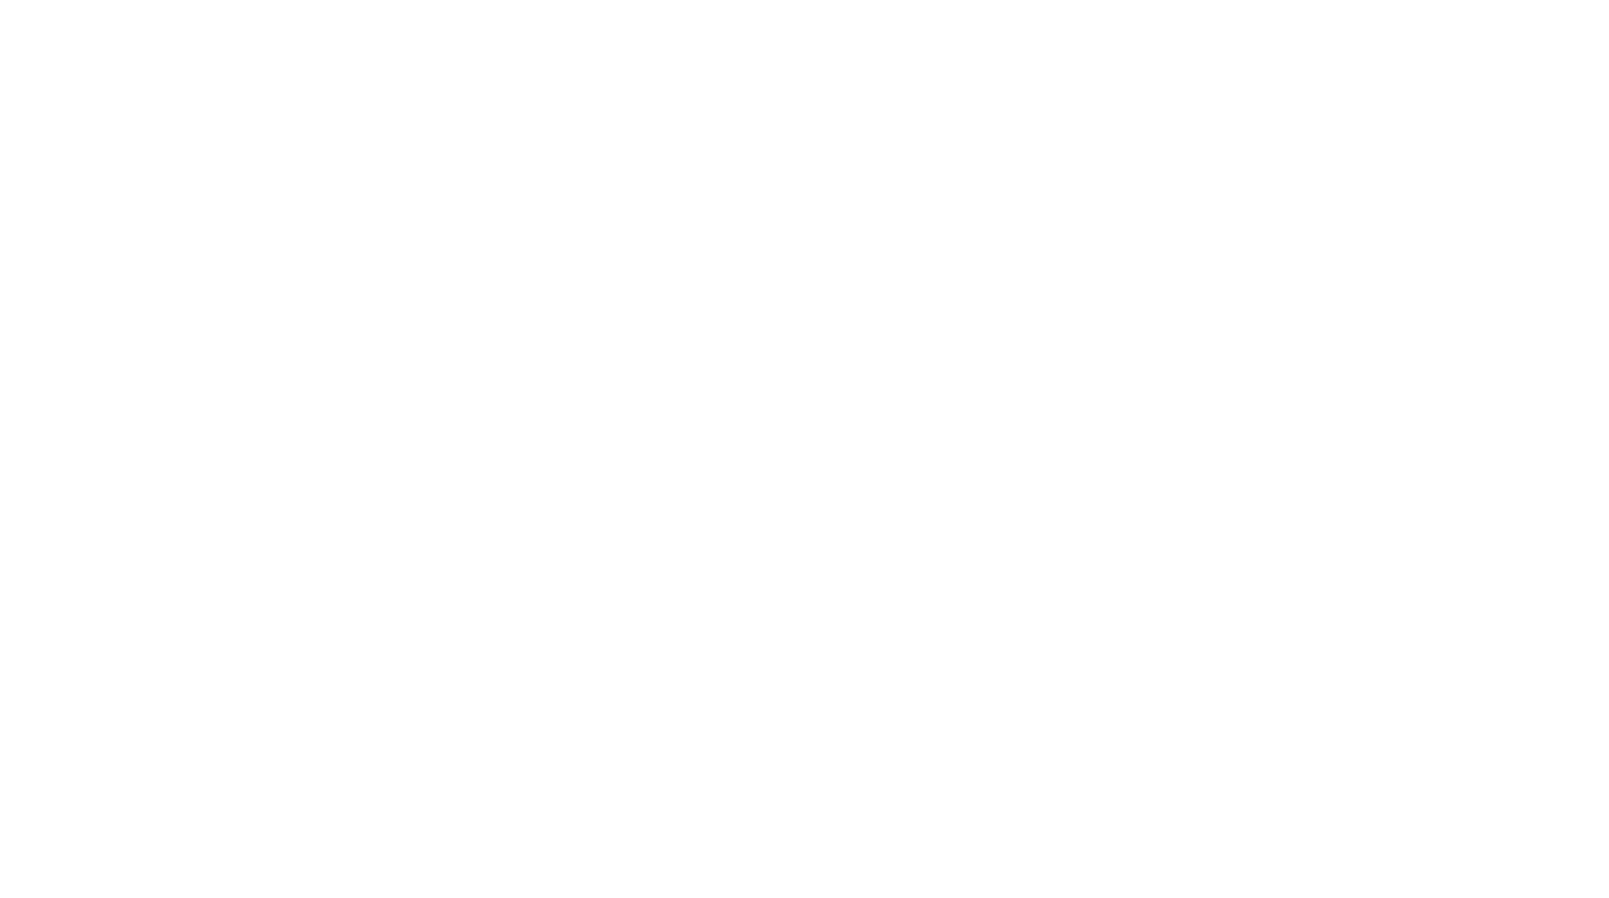 Ruane Remy is an Editors' Association of Canada Member